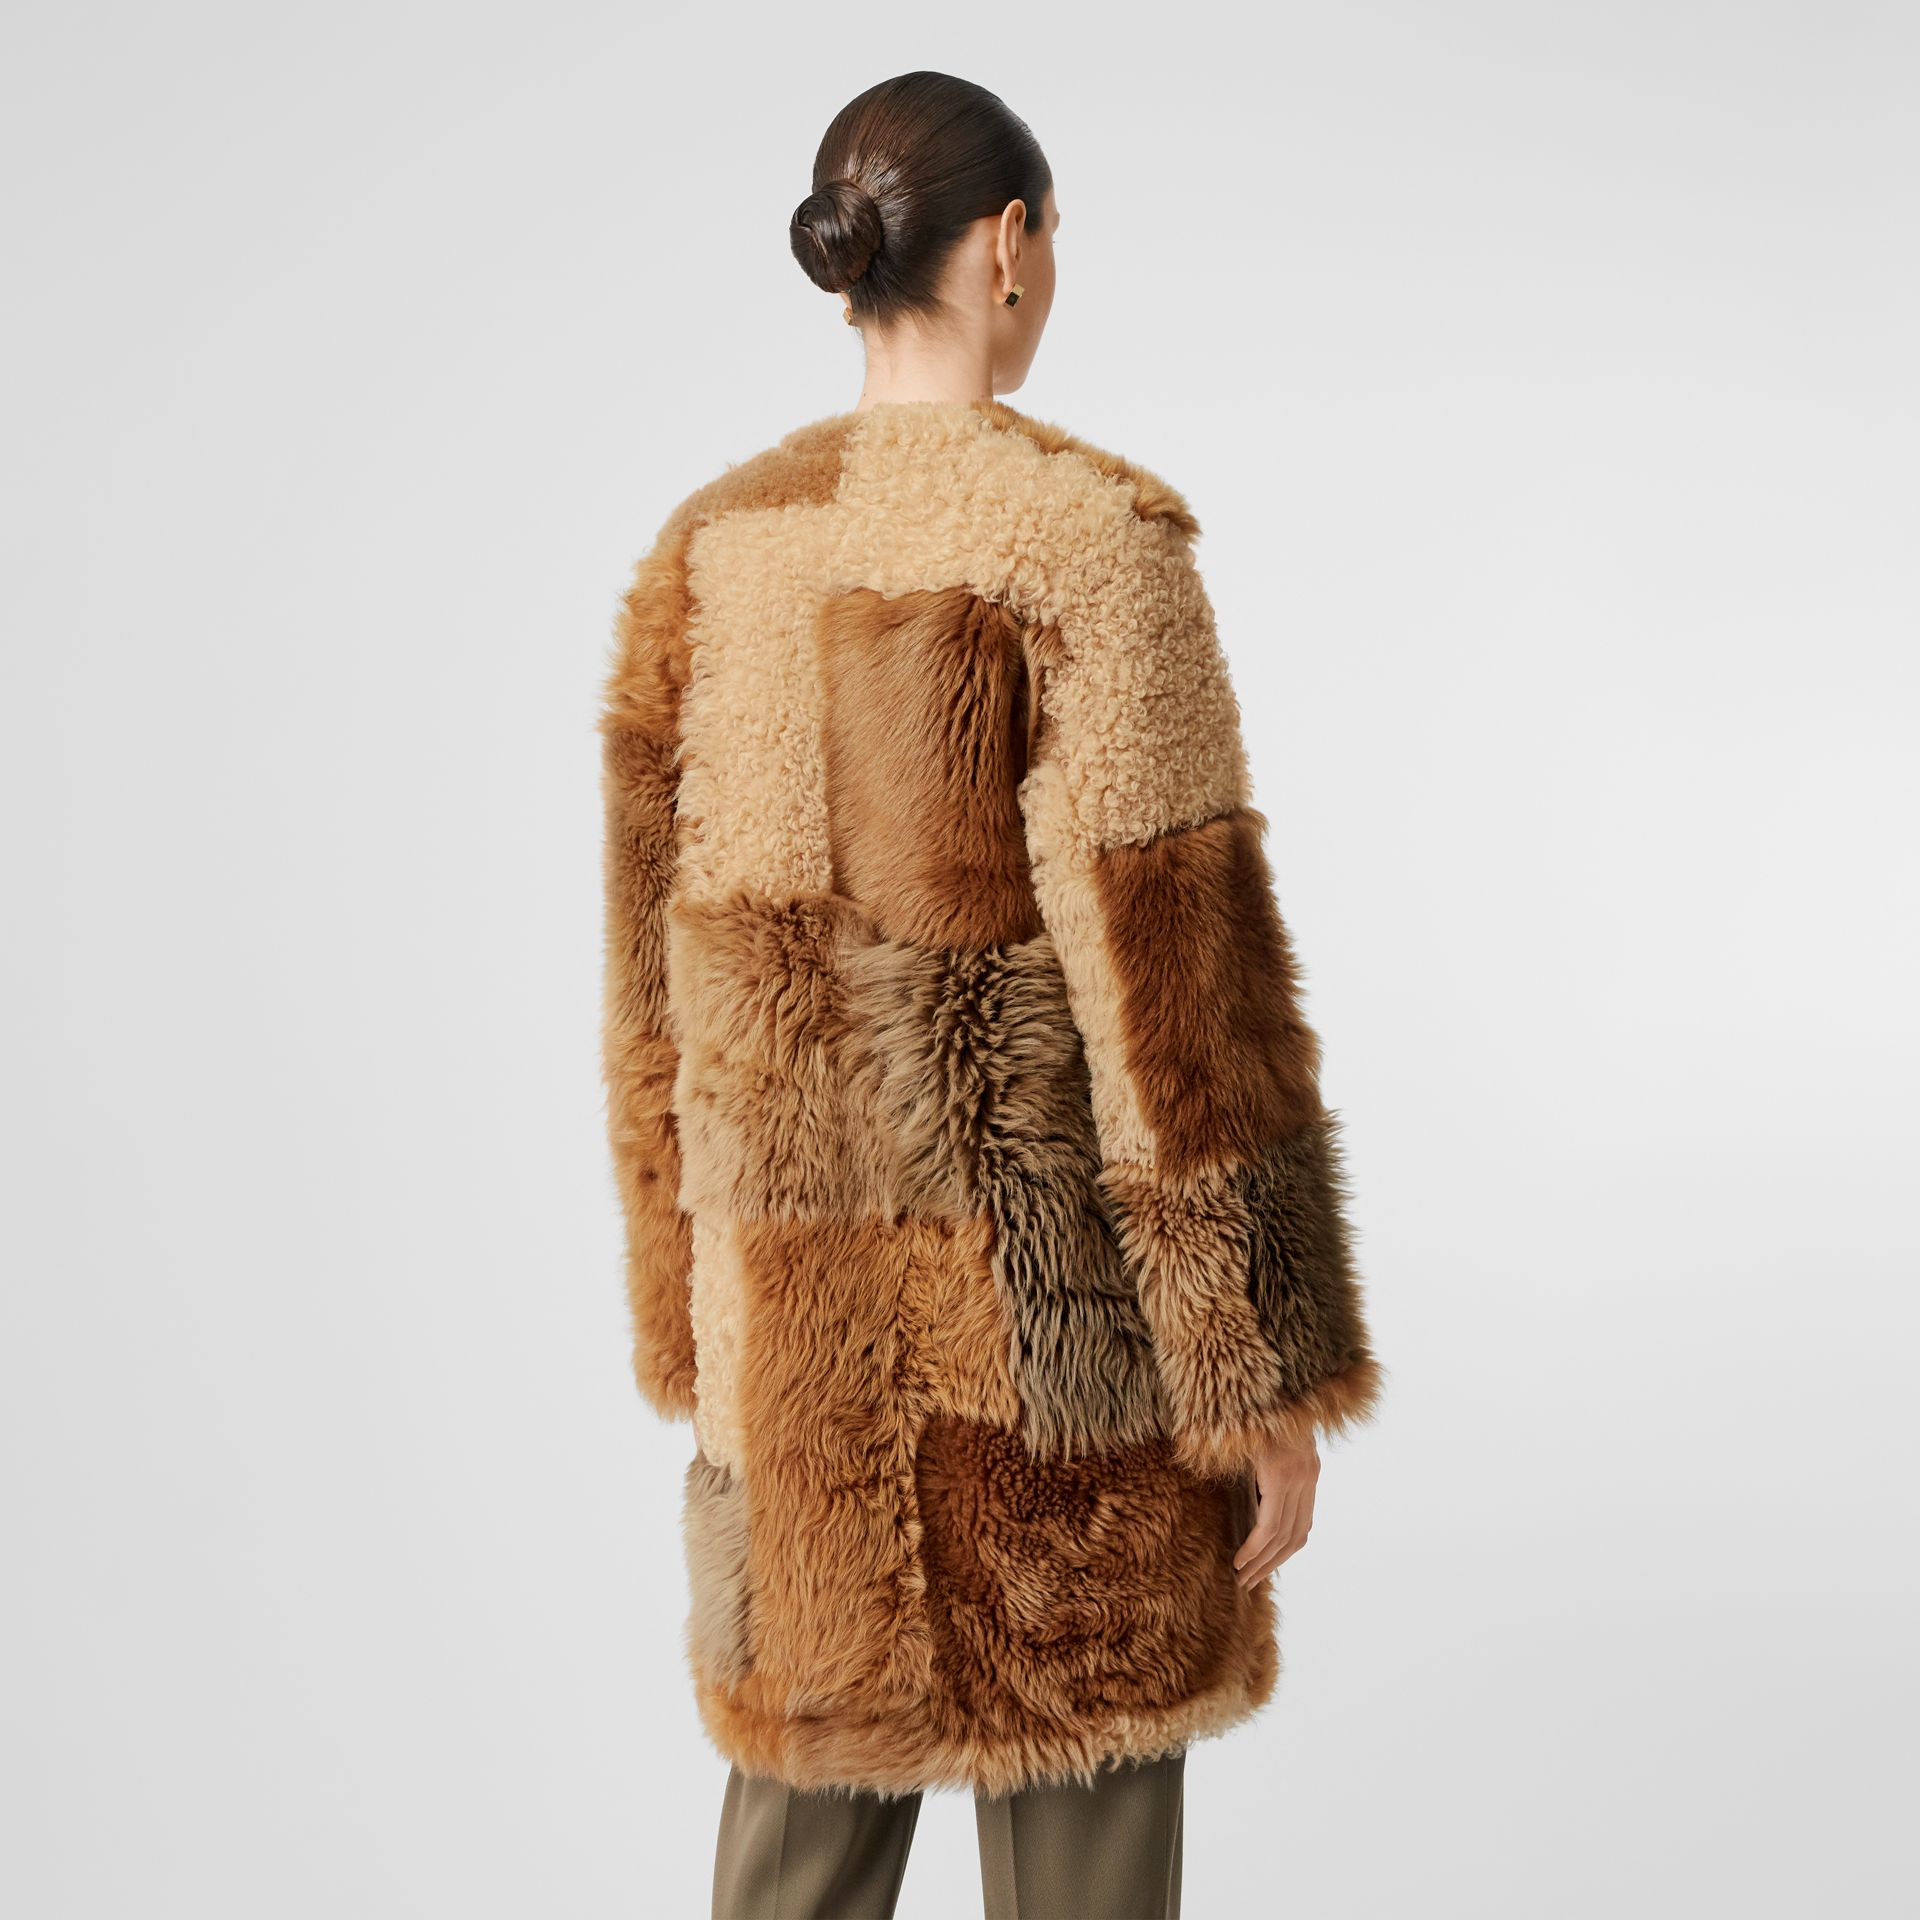 Patchwork Shearling Coat in Toffee - Women | Burberry Australia - gallery image 3